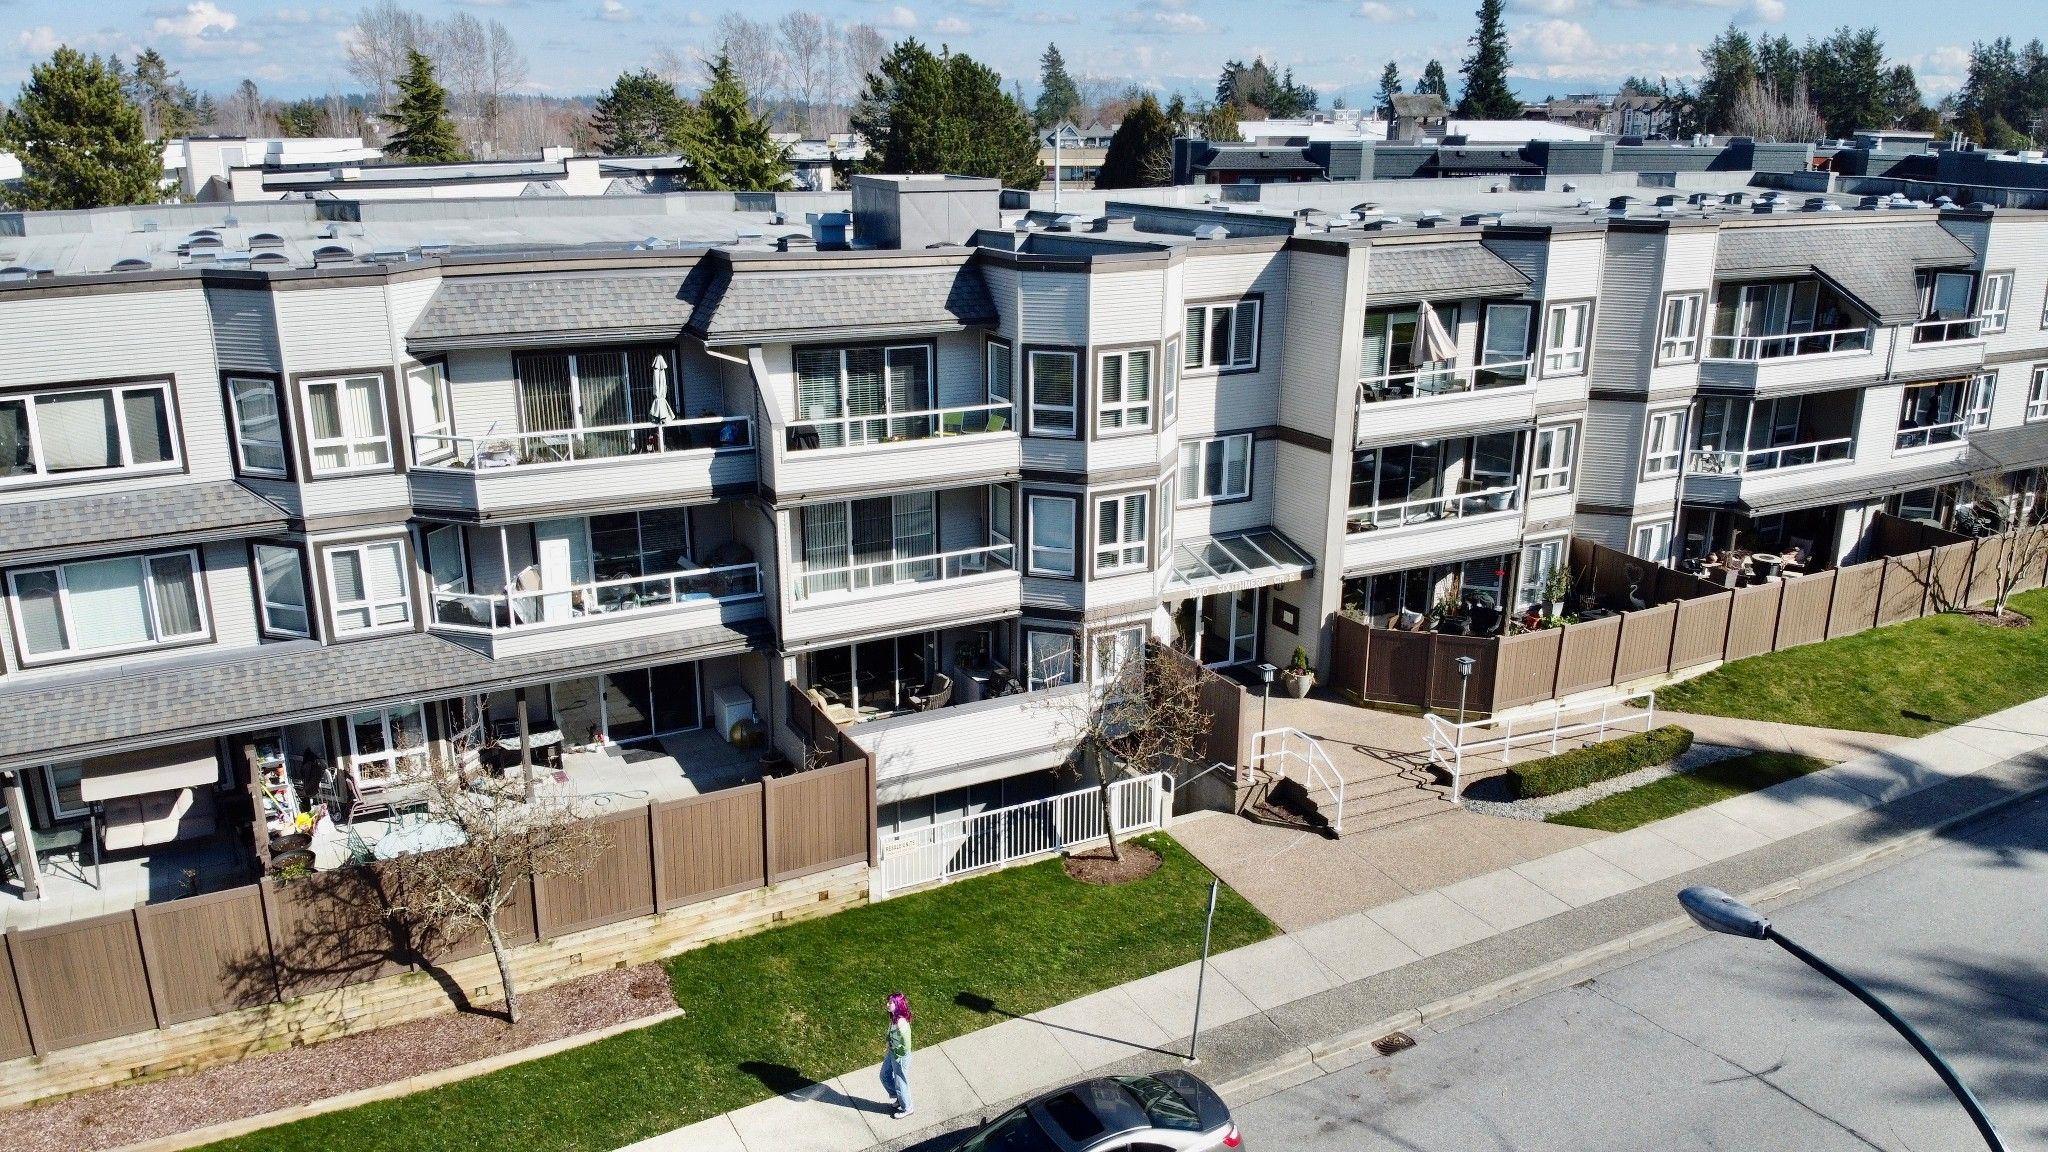 """Main Photo: 312 1840 E SOUTHMERE Crescent in Surrey: Sunnyside Park Surrey Condo for sale in """"SOUTHMERE MEWS WEST"""" (South Surrey White Rock)  : MLS®# R2443327"""